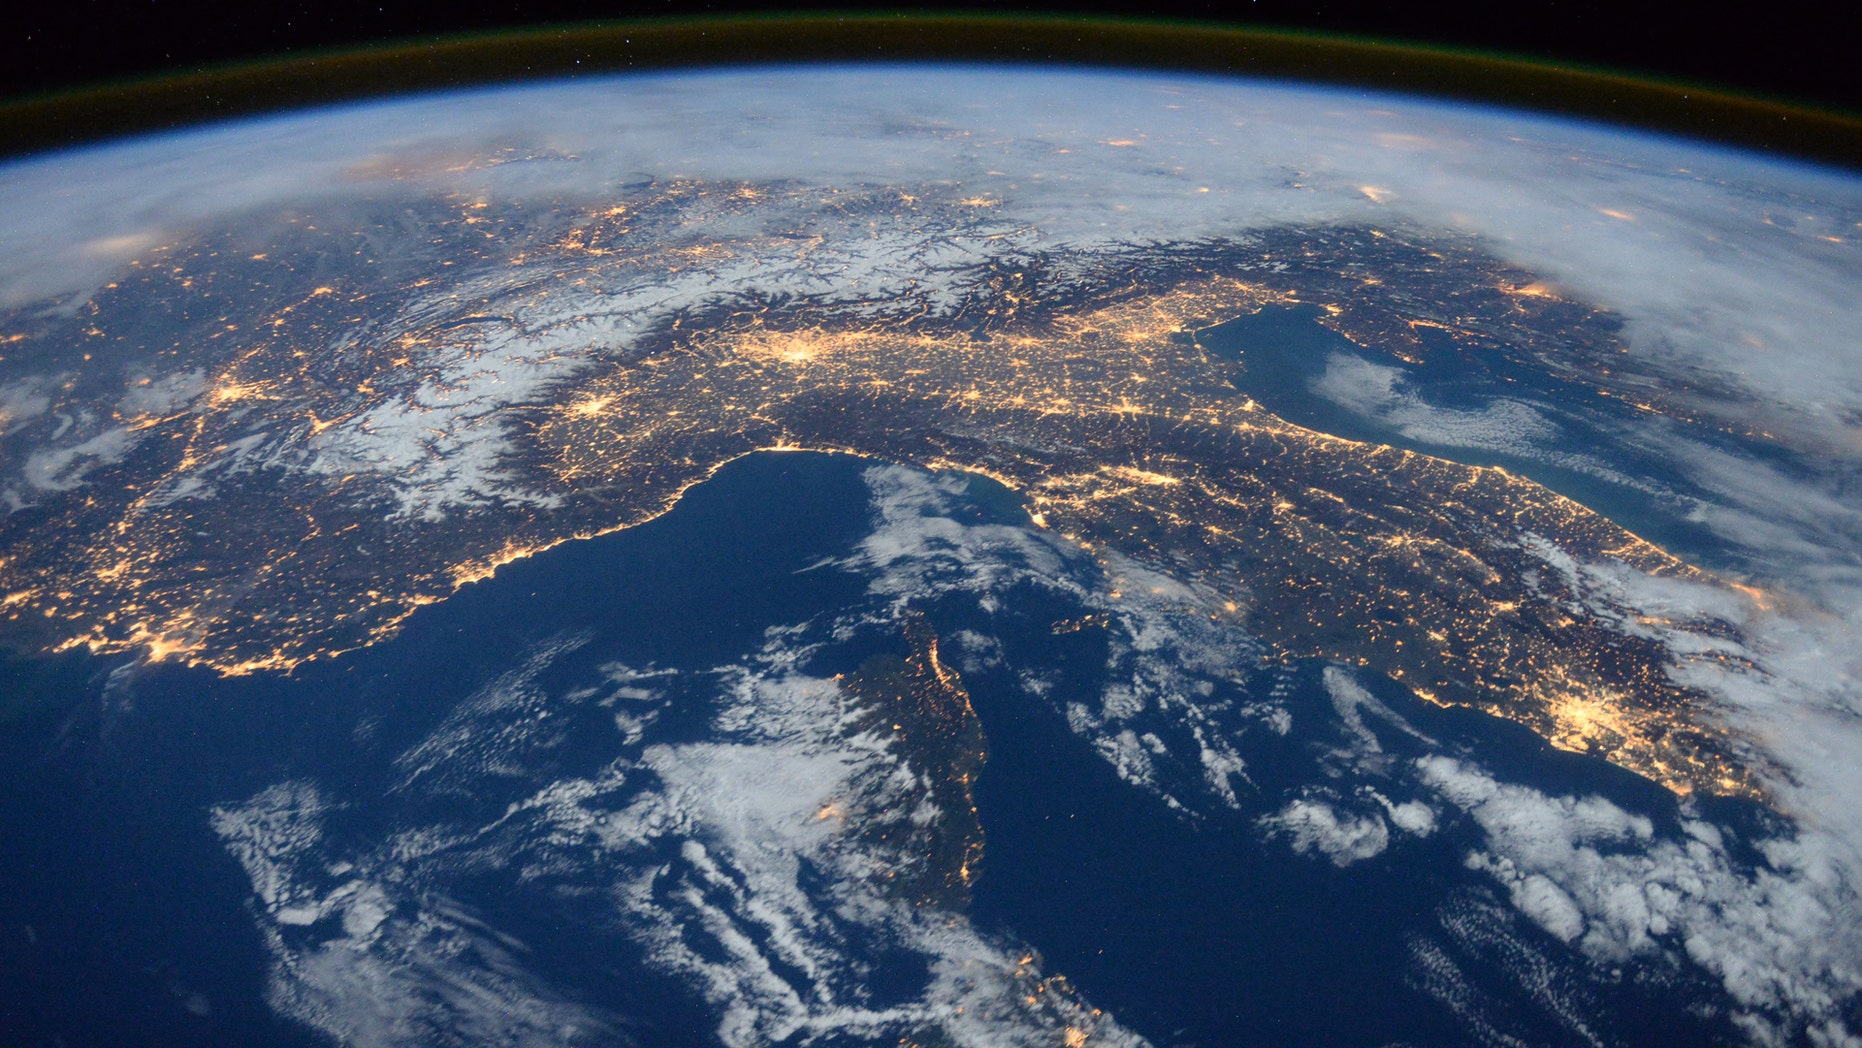 File photo: A photo taken by Expedition 46 flight engineer Tim Peake of the European Space Agency (ESA) aboard the International Space Station shows Italy, the Alps, and the Mediterranean on January, 25, 2016. (REUTERS/NASA/Tim Peake/Handout)